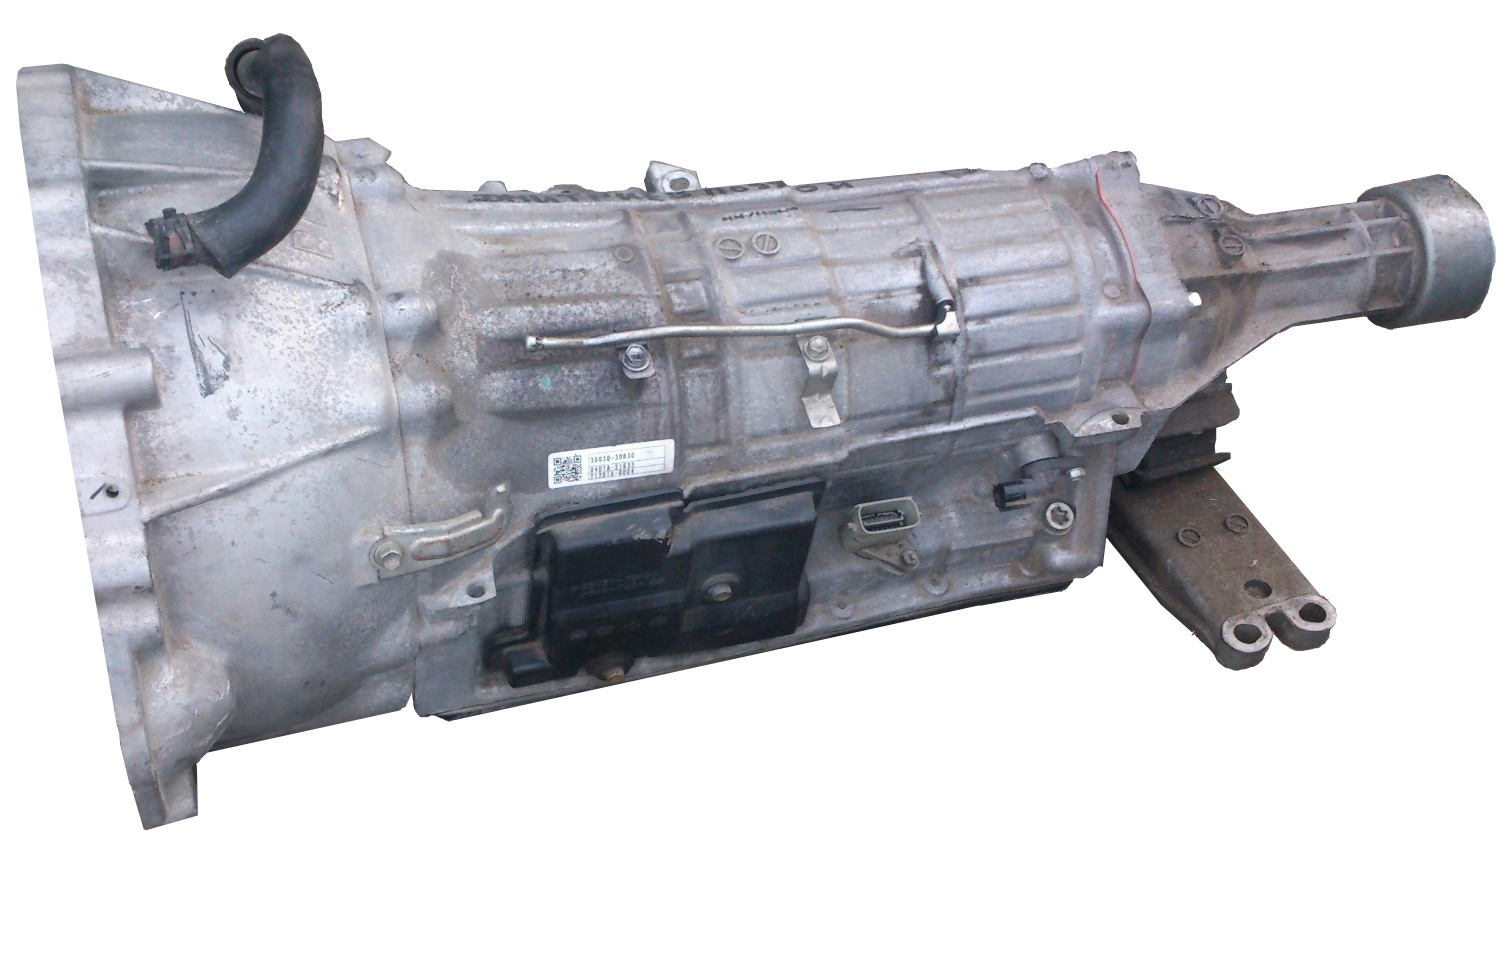 A760E Transmission parts, repair guidelines, problems, manuals